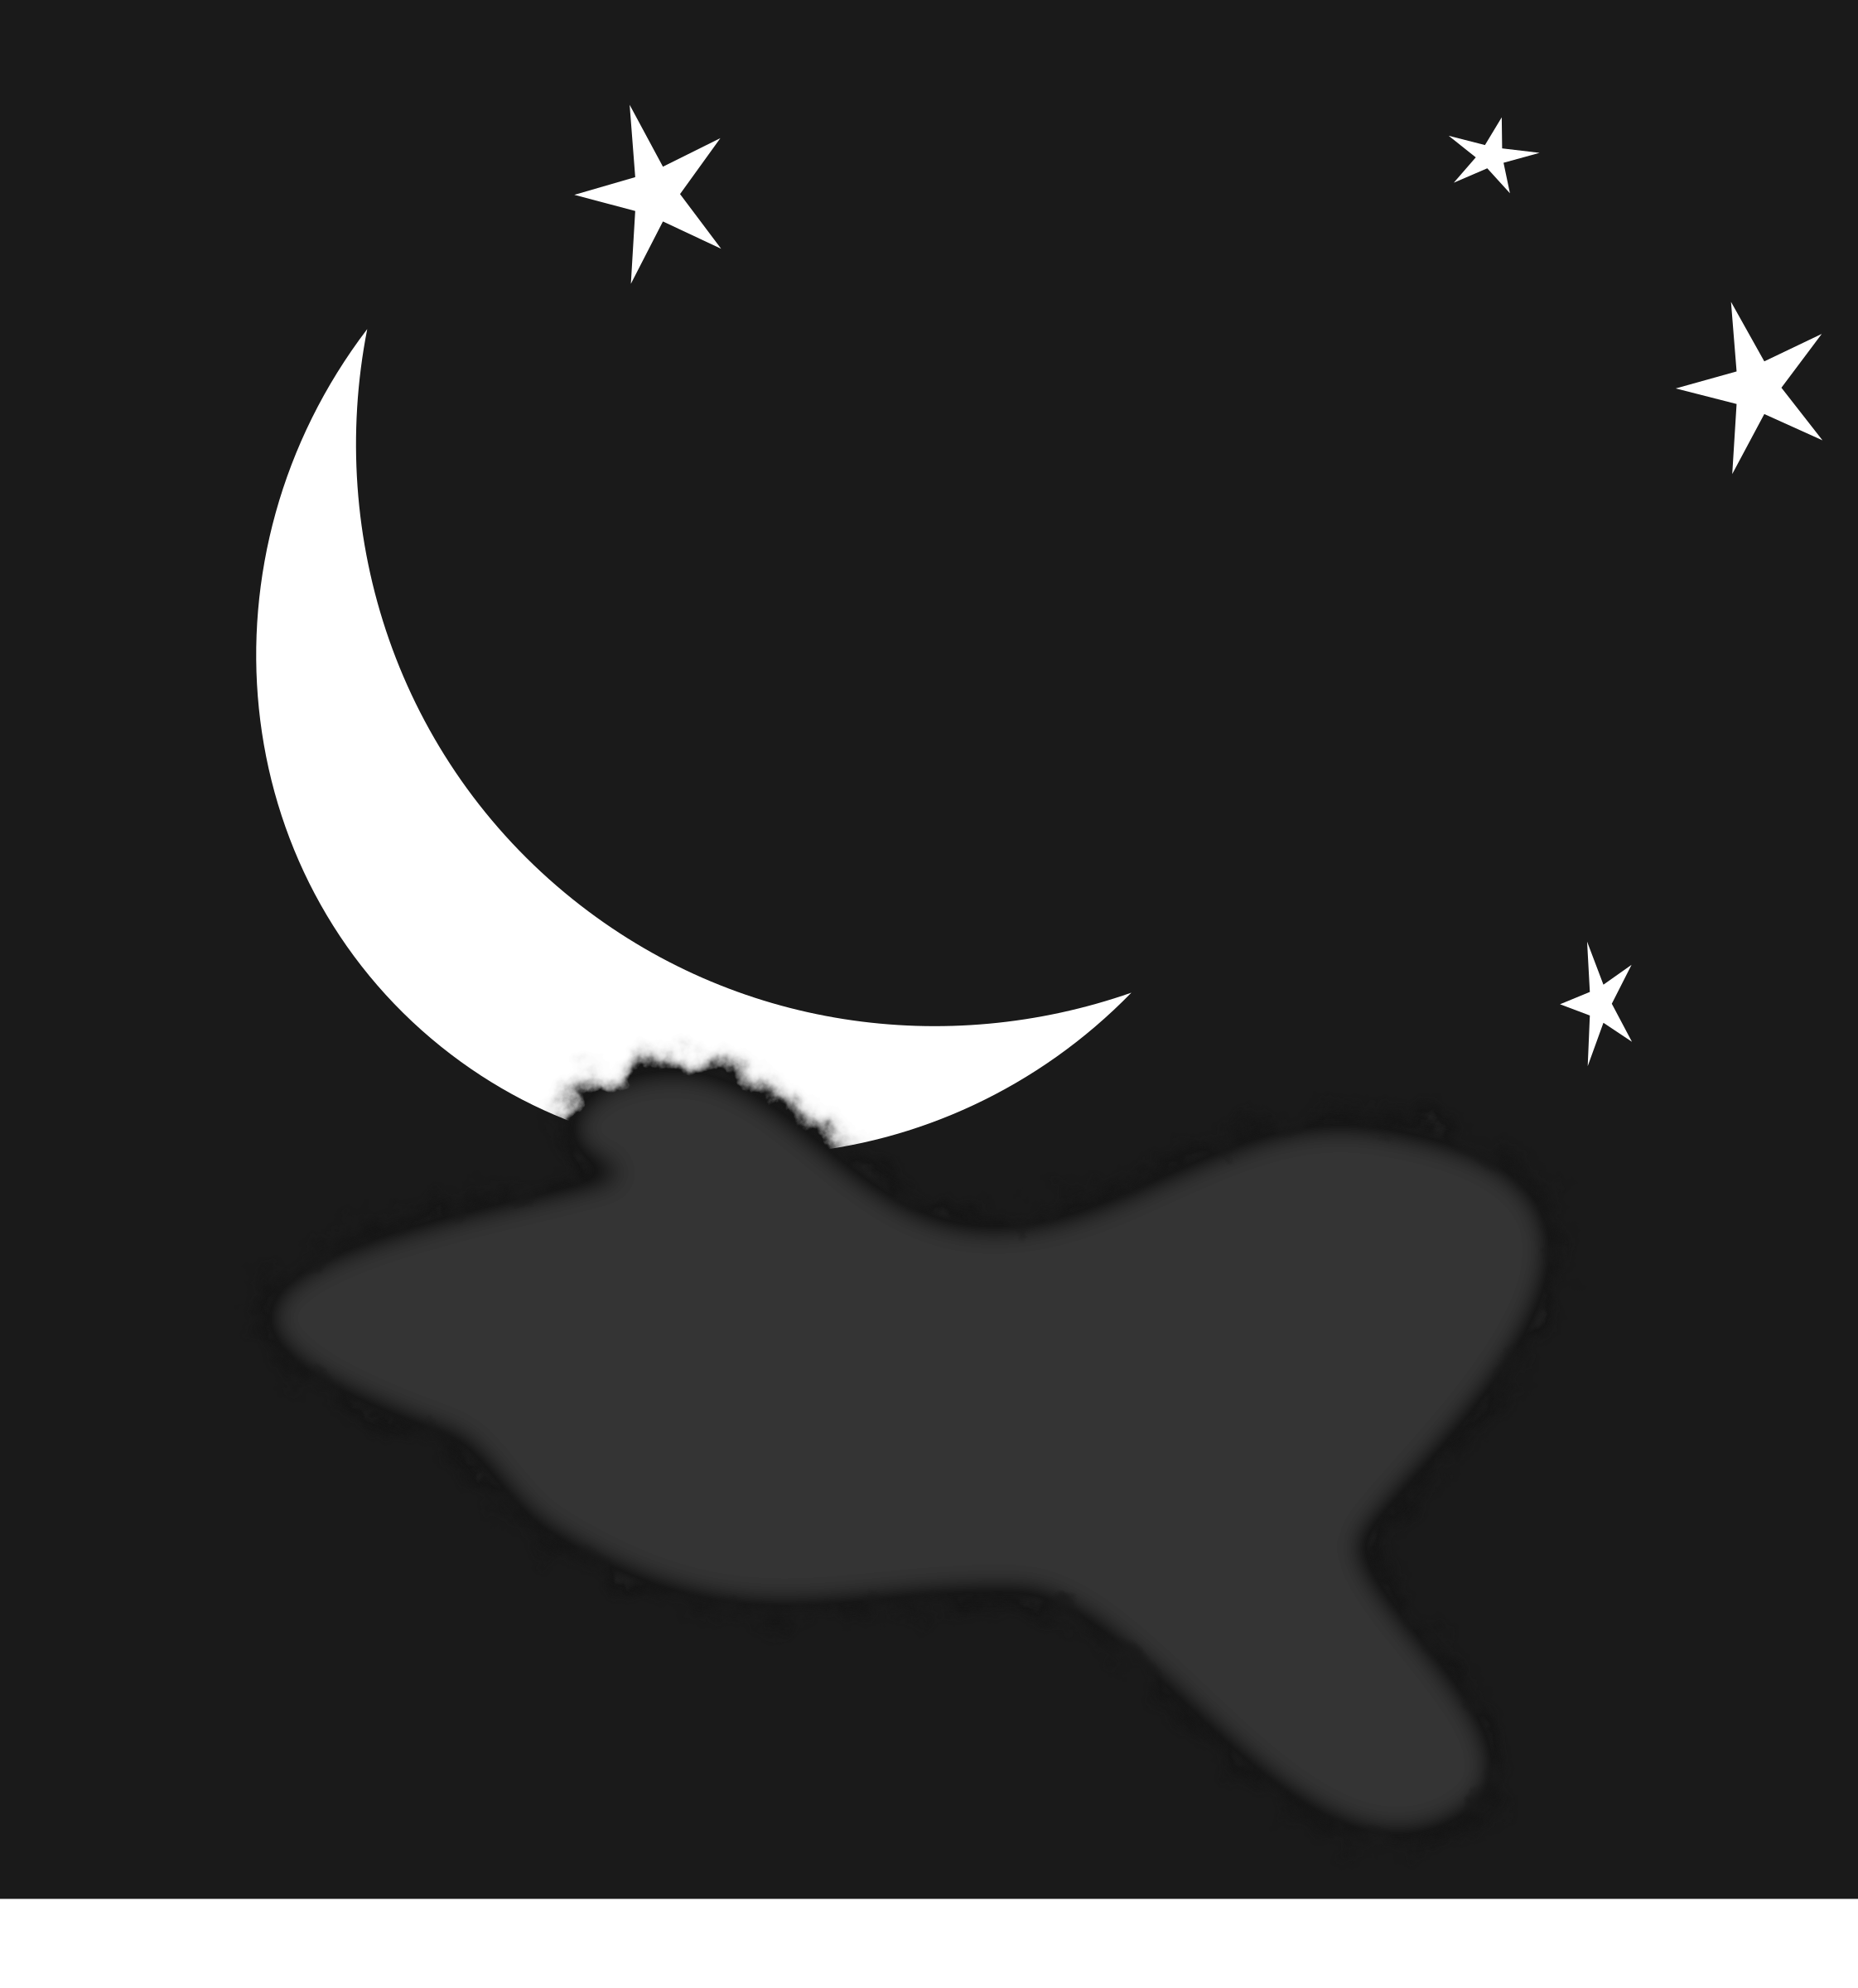 Moon clipart bitmap. Free starry sky download